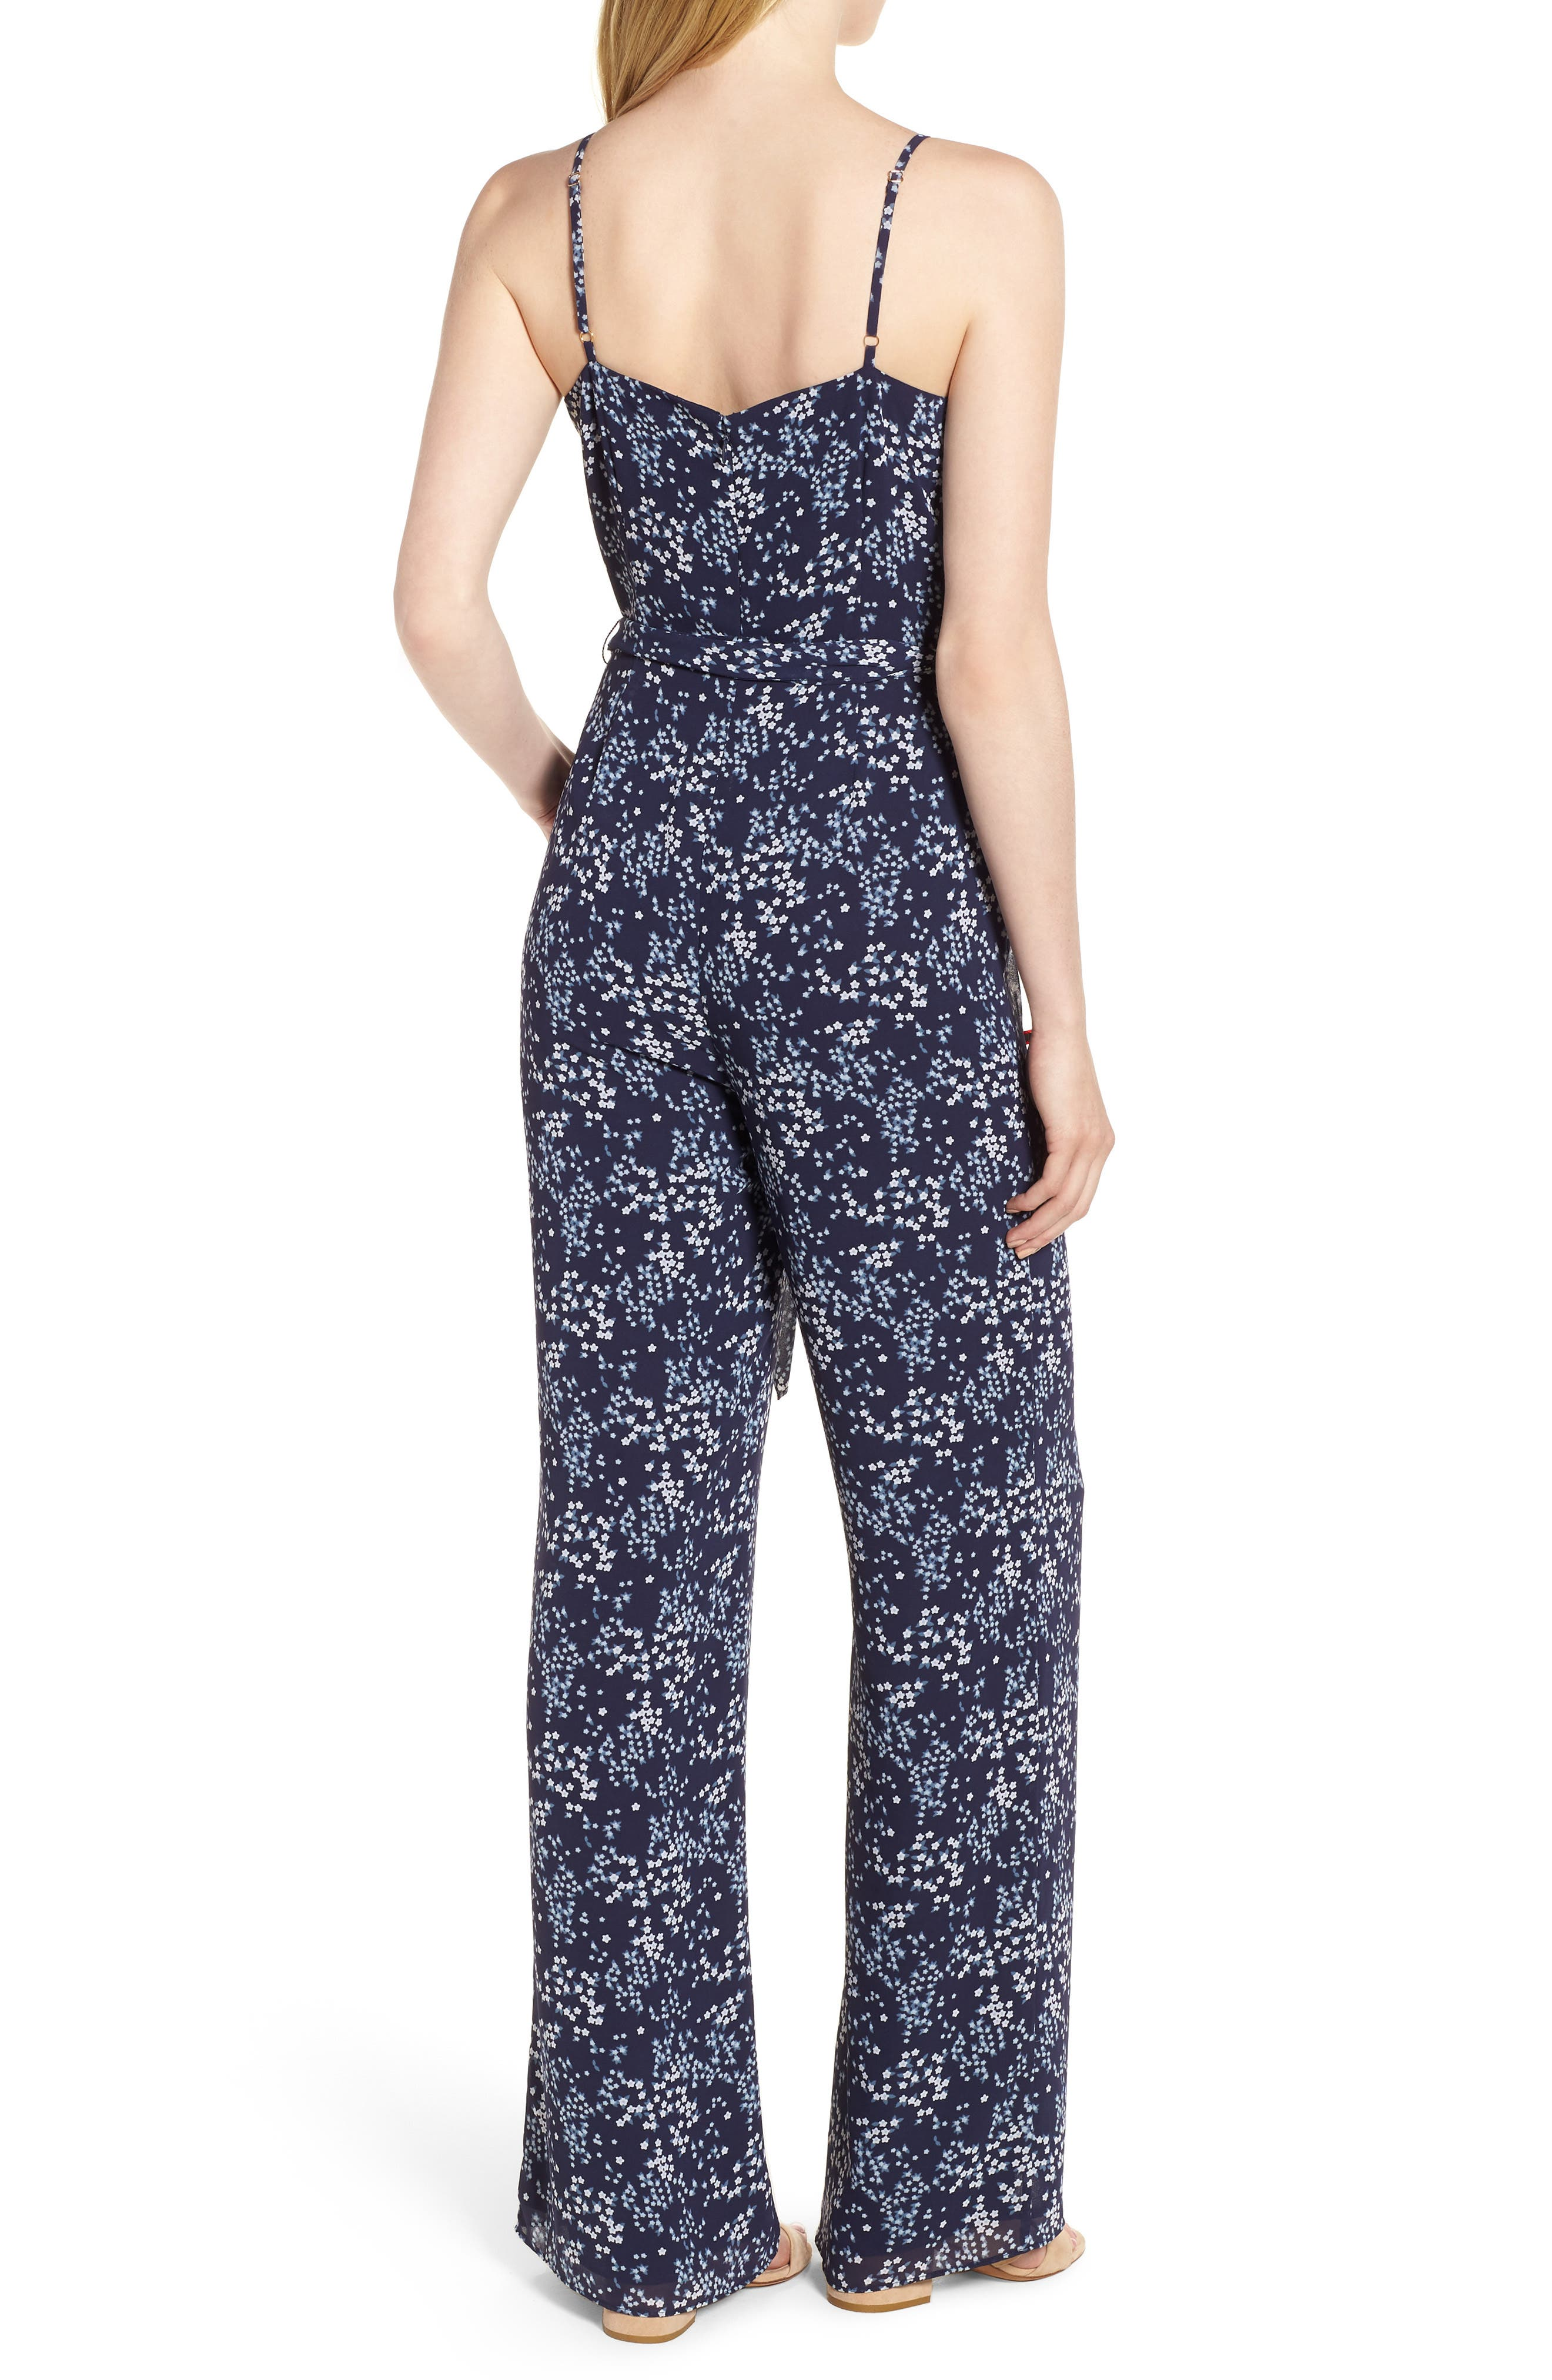 Scattered Blooms Jumpsuit,                             Alternate thumbnail 2, color,                             True Navy/ Light Chambray